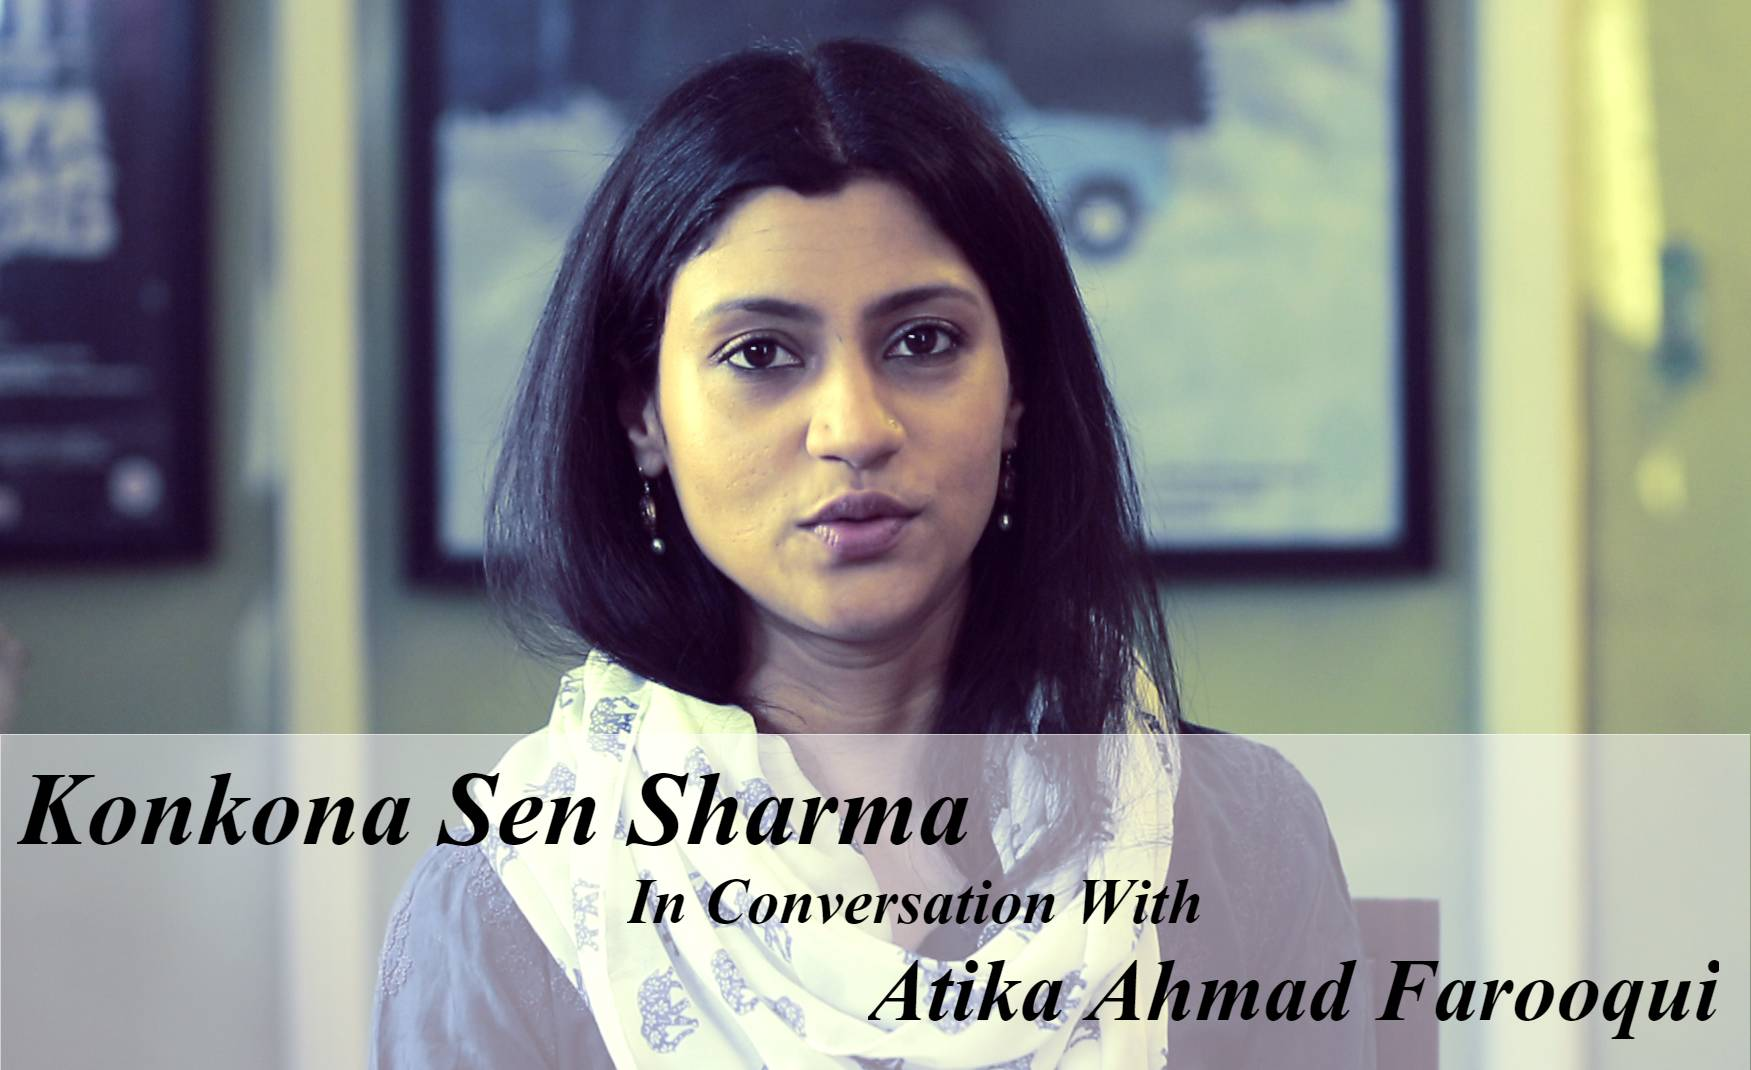 Konkona Sen Sharma In Conversation With Atika Ahmad Farooqui